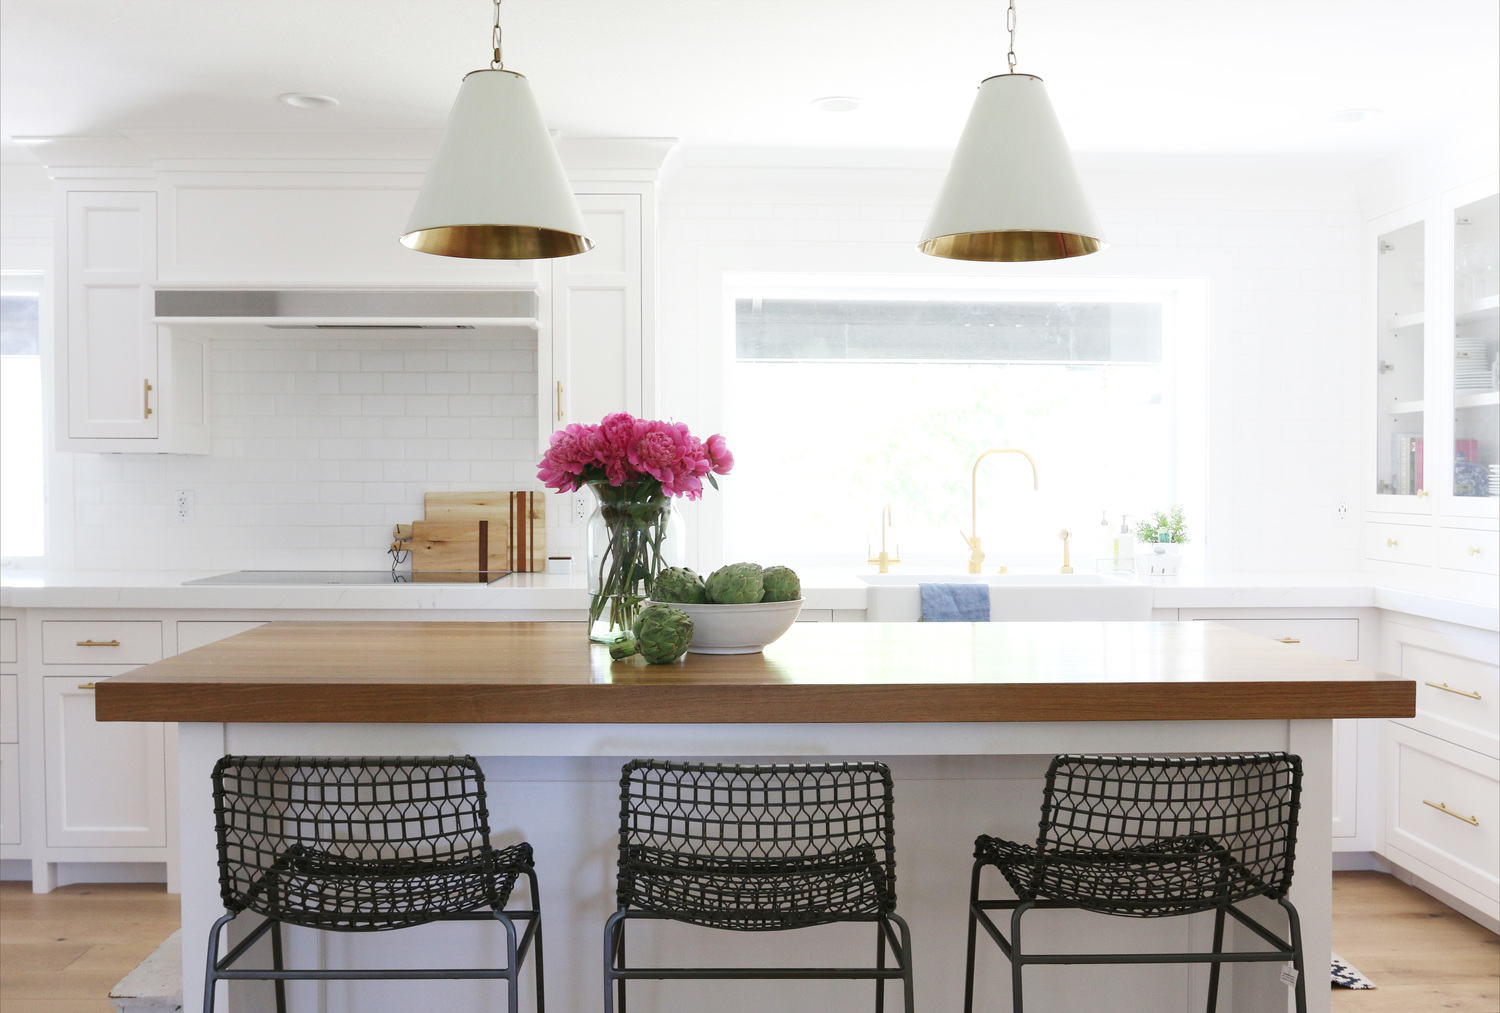 Studio McGee's latest Remodel! White kitchen, brass hardware and a butcher block island.